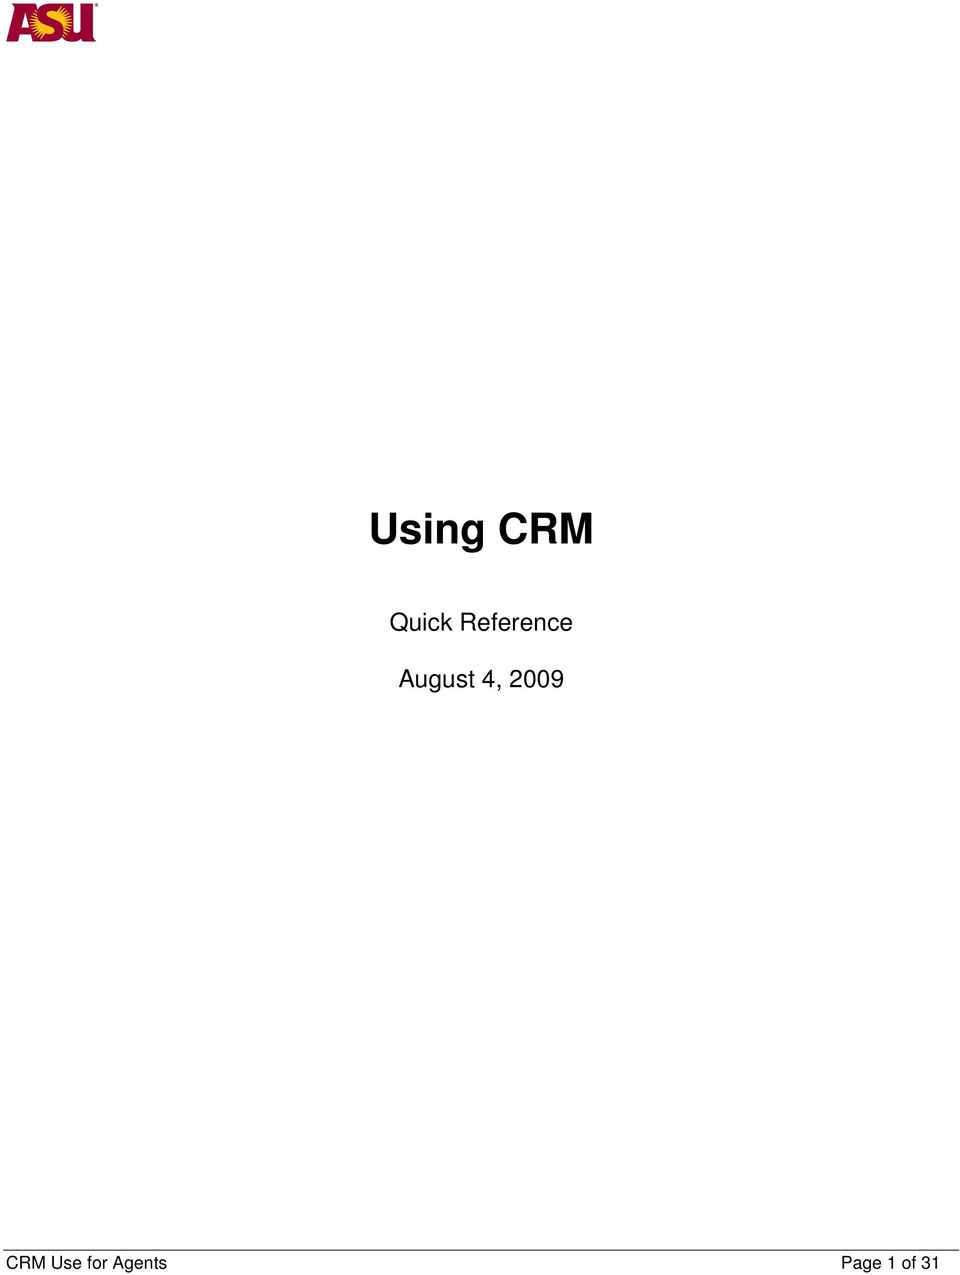 CRM Use for